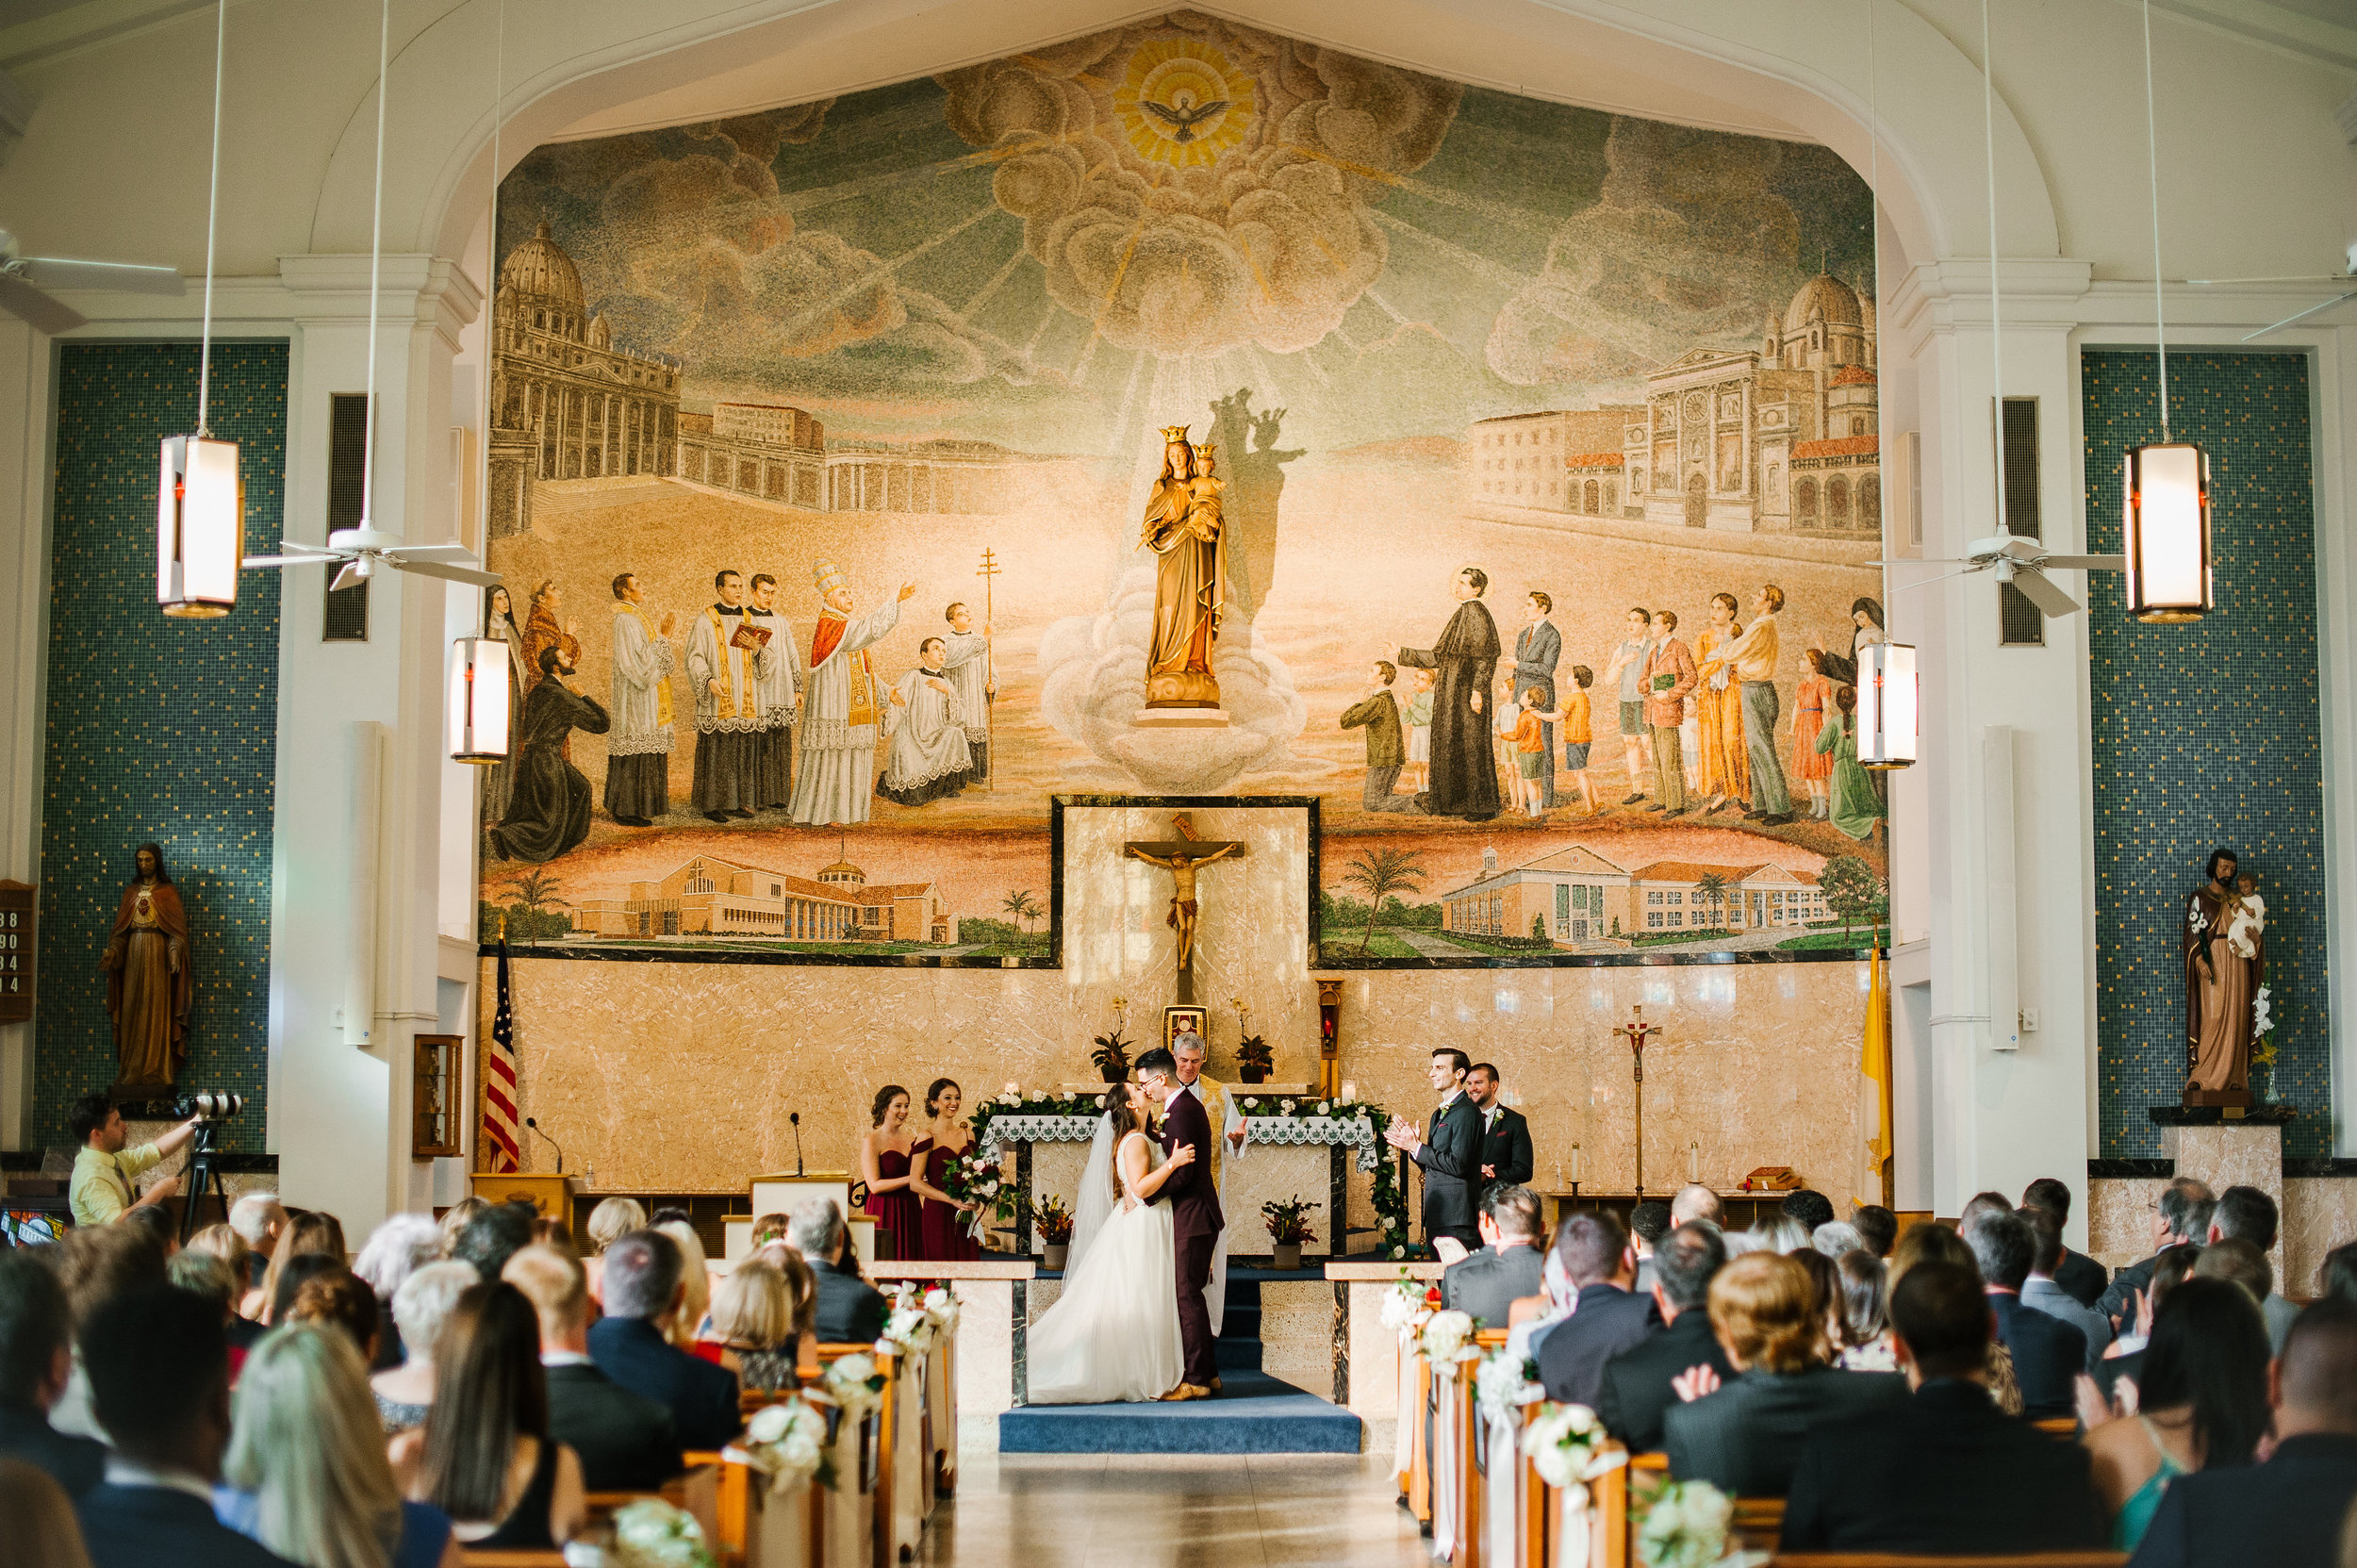 The ceremony was held at the beautiful Mary Help of Christian Catholic Church.